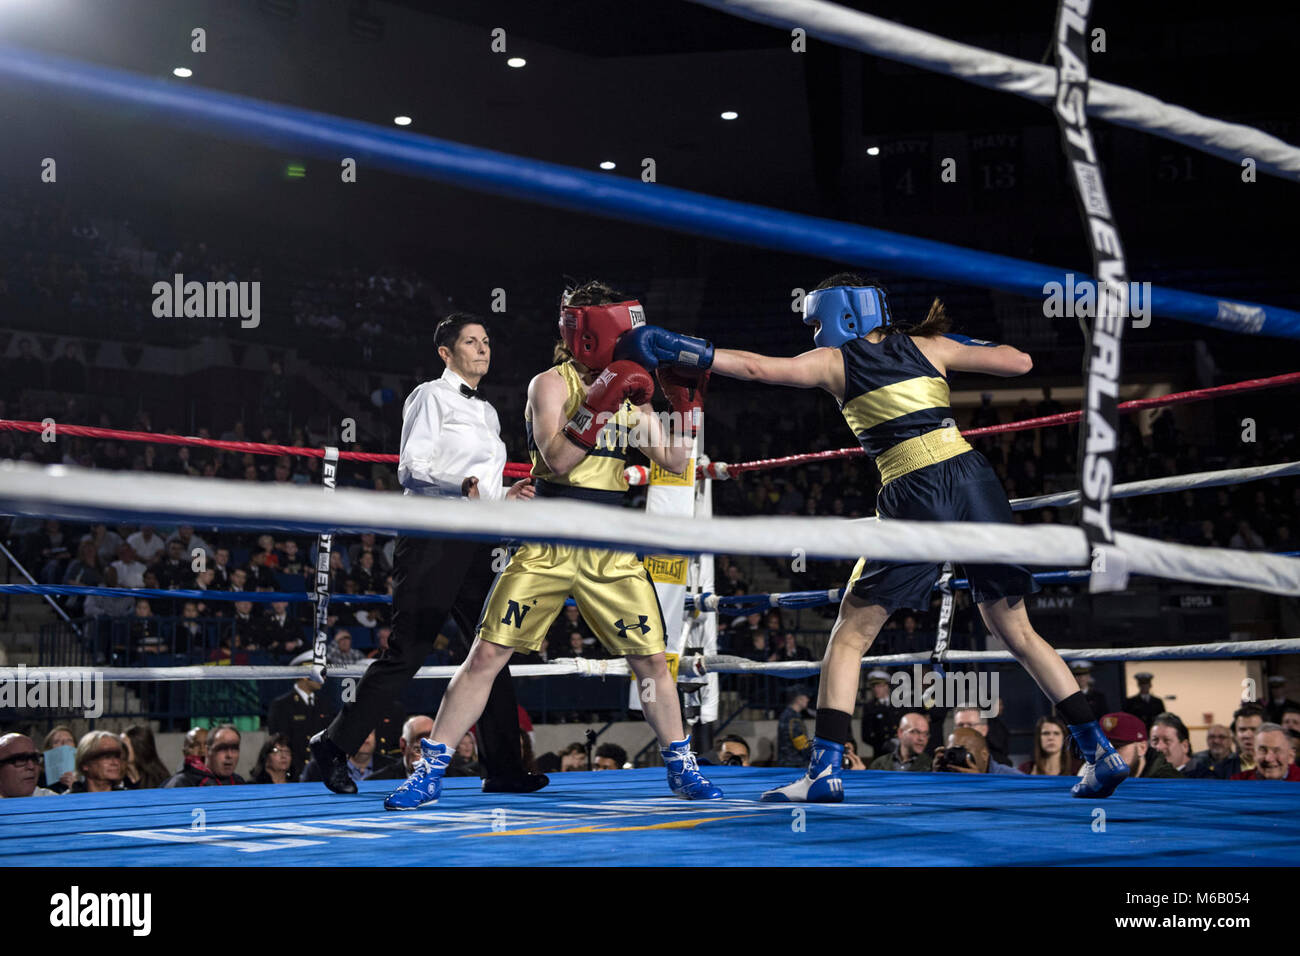 Navy Boxing Stock Photos & Navy Boxing Stock Images - Alamy